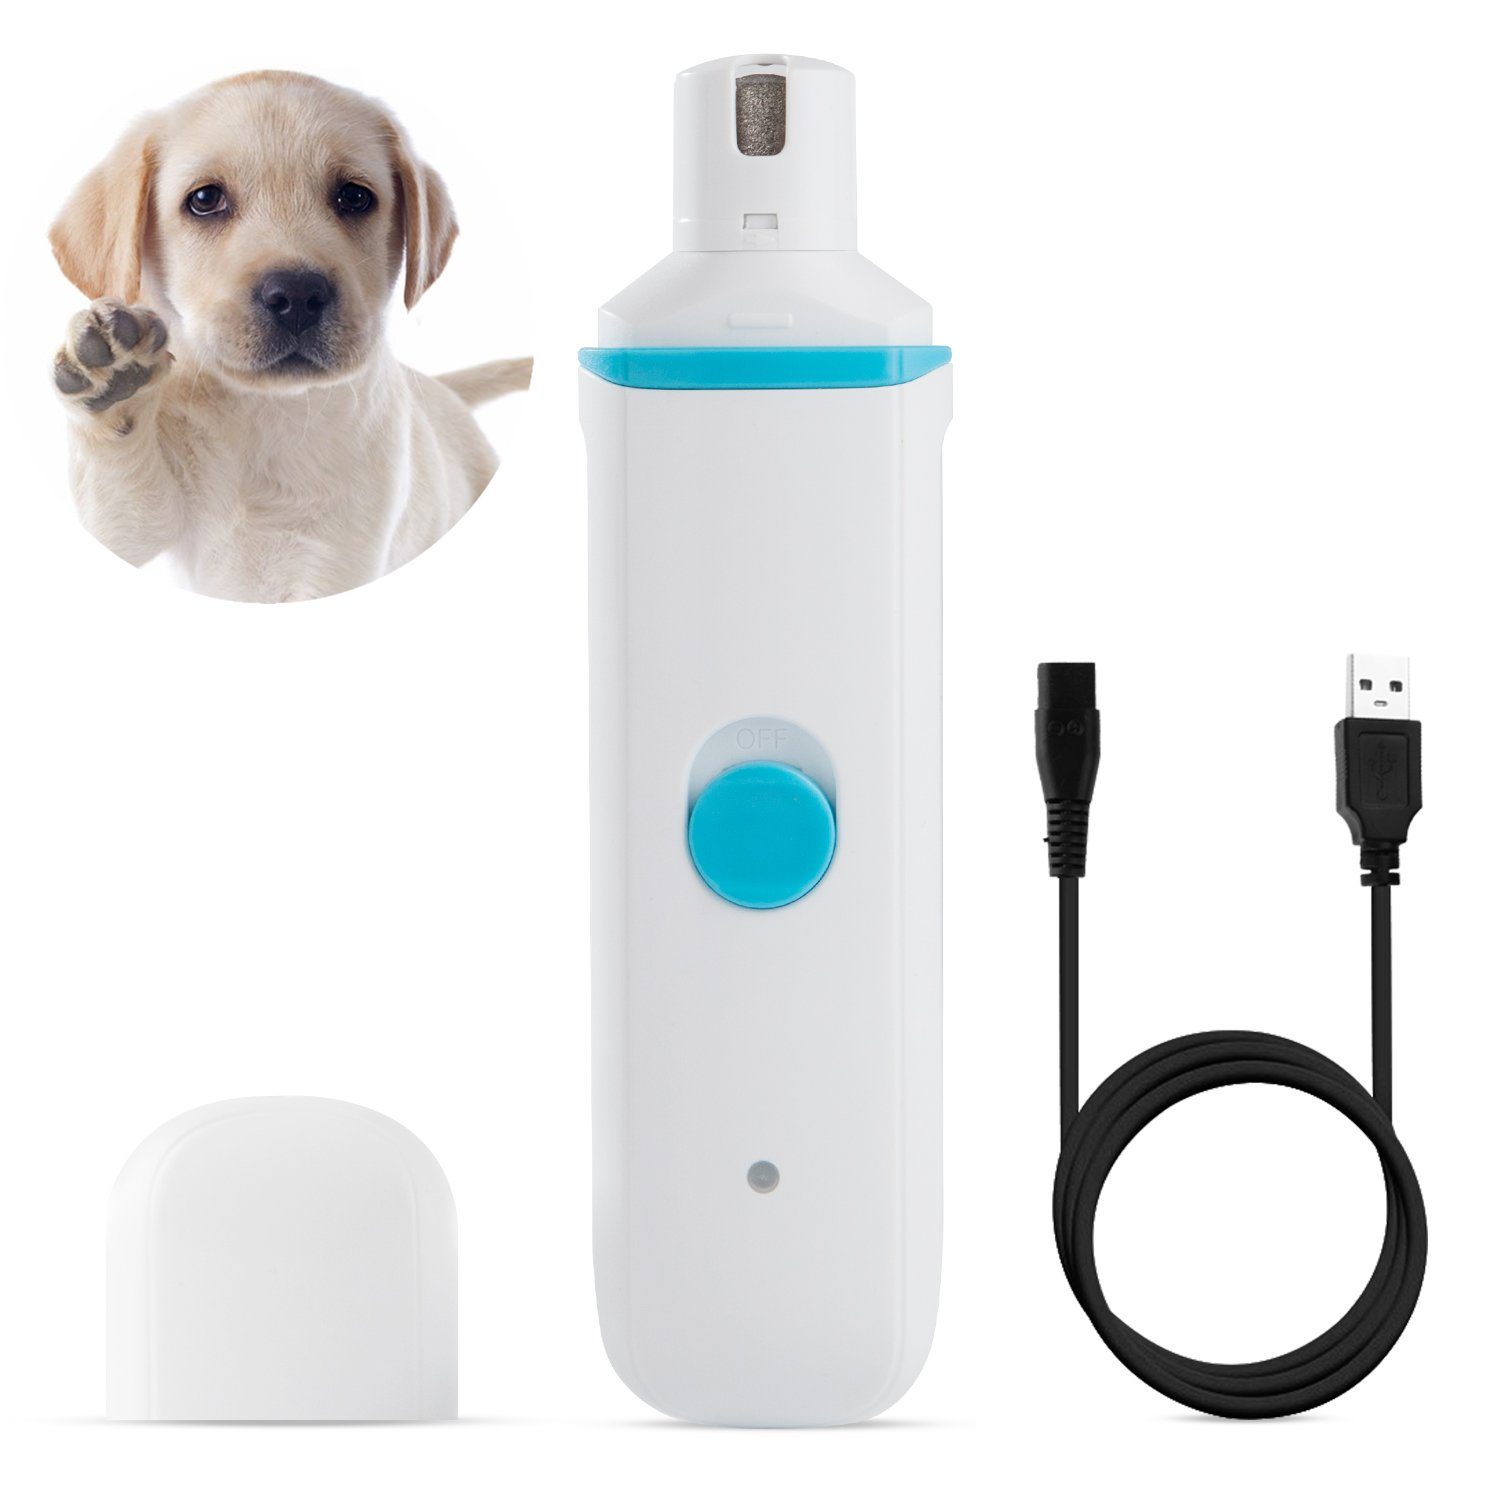 Electric Pet Nail Grinder for Dogs Cats Birds, Nail Trimming Grooming and Shaping, Low Noise with USB Wire Rechargeable and Portable by Dr.Grinder